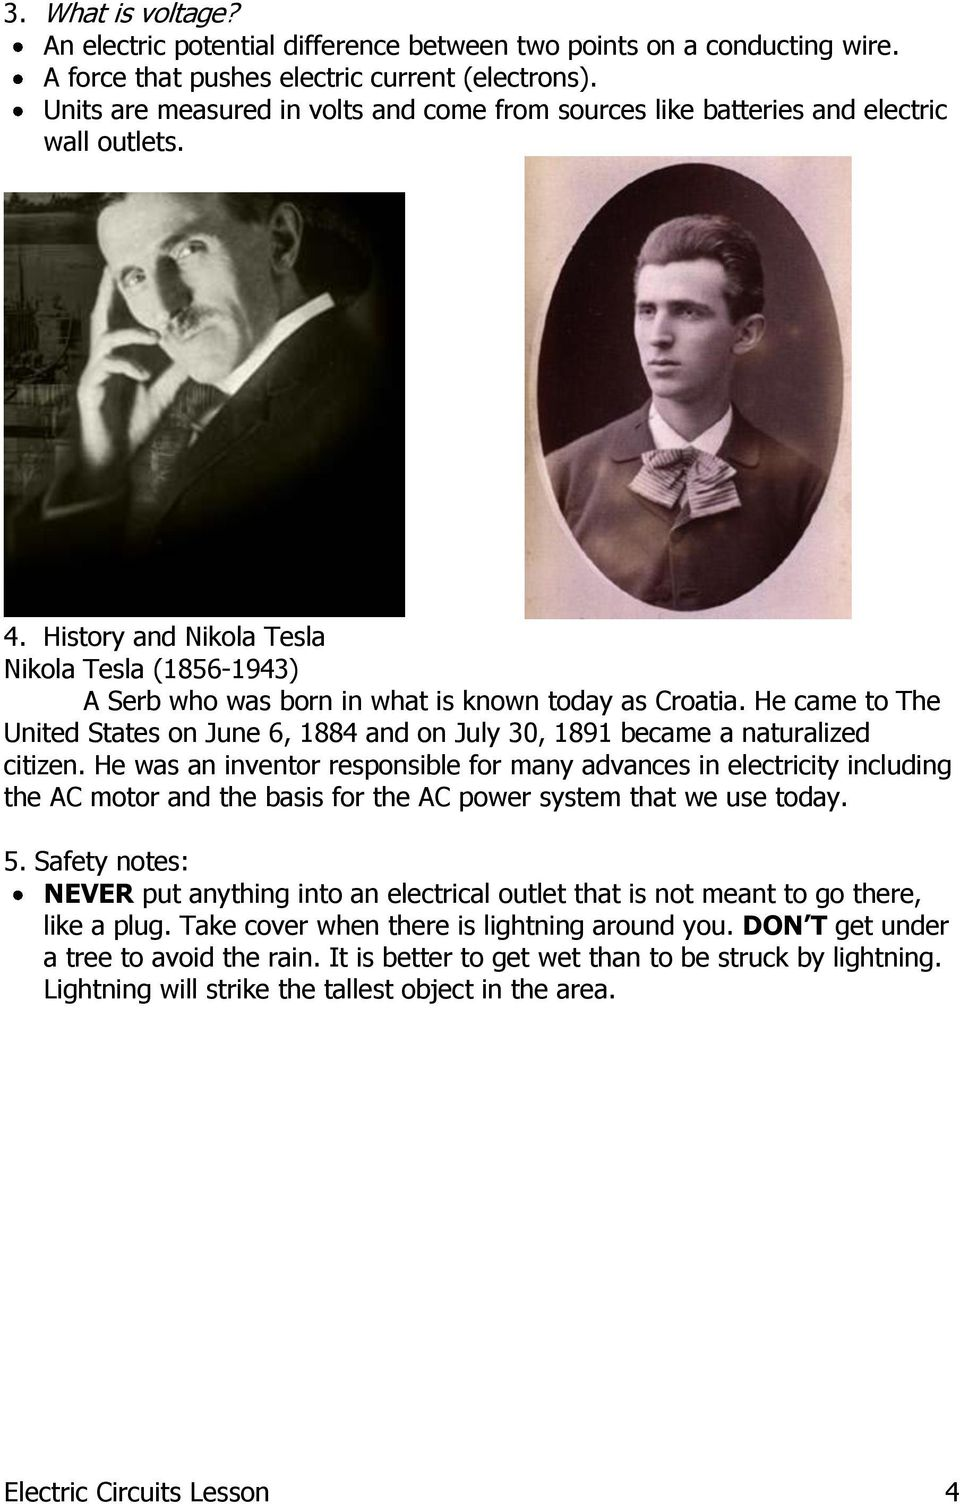 He came to The United States on June 6, 1884 and on July 30, 1891 became a naturalized citizen.